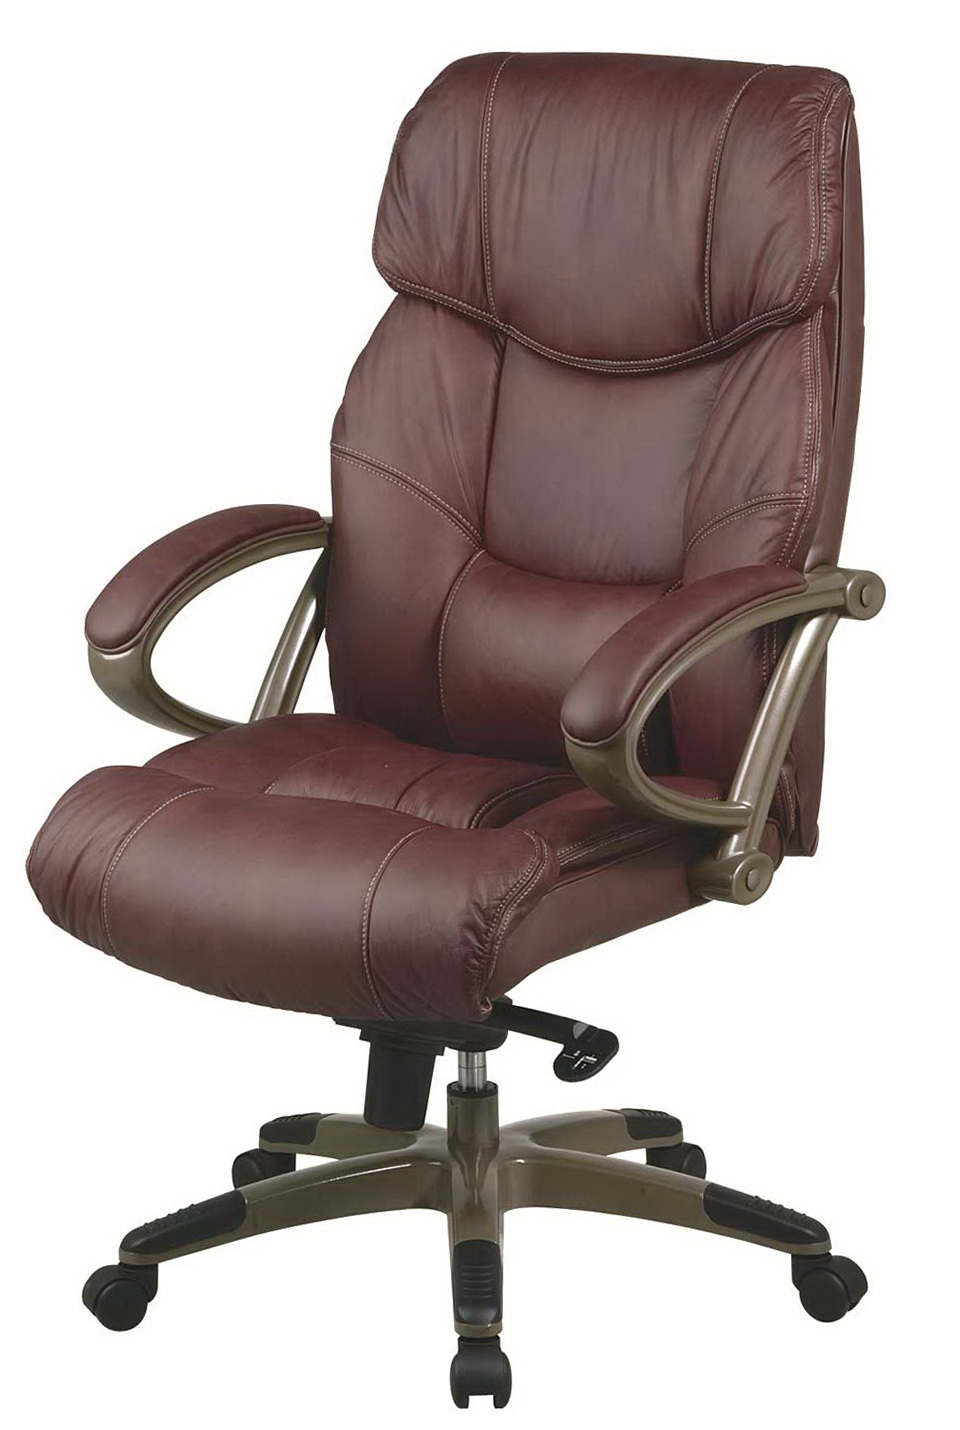 Brown Leather Office Desk Chairs